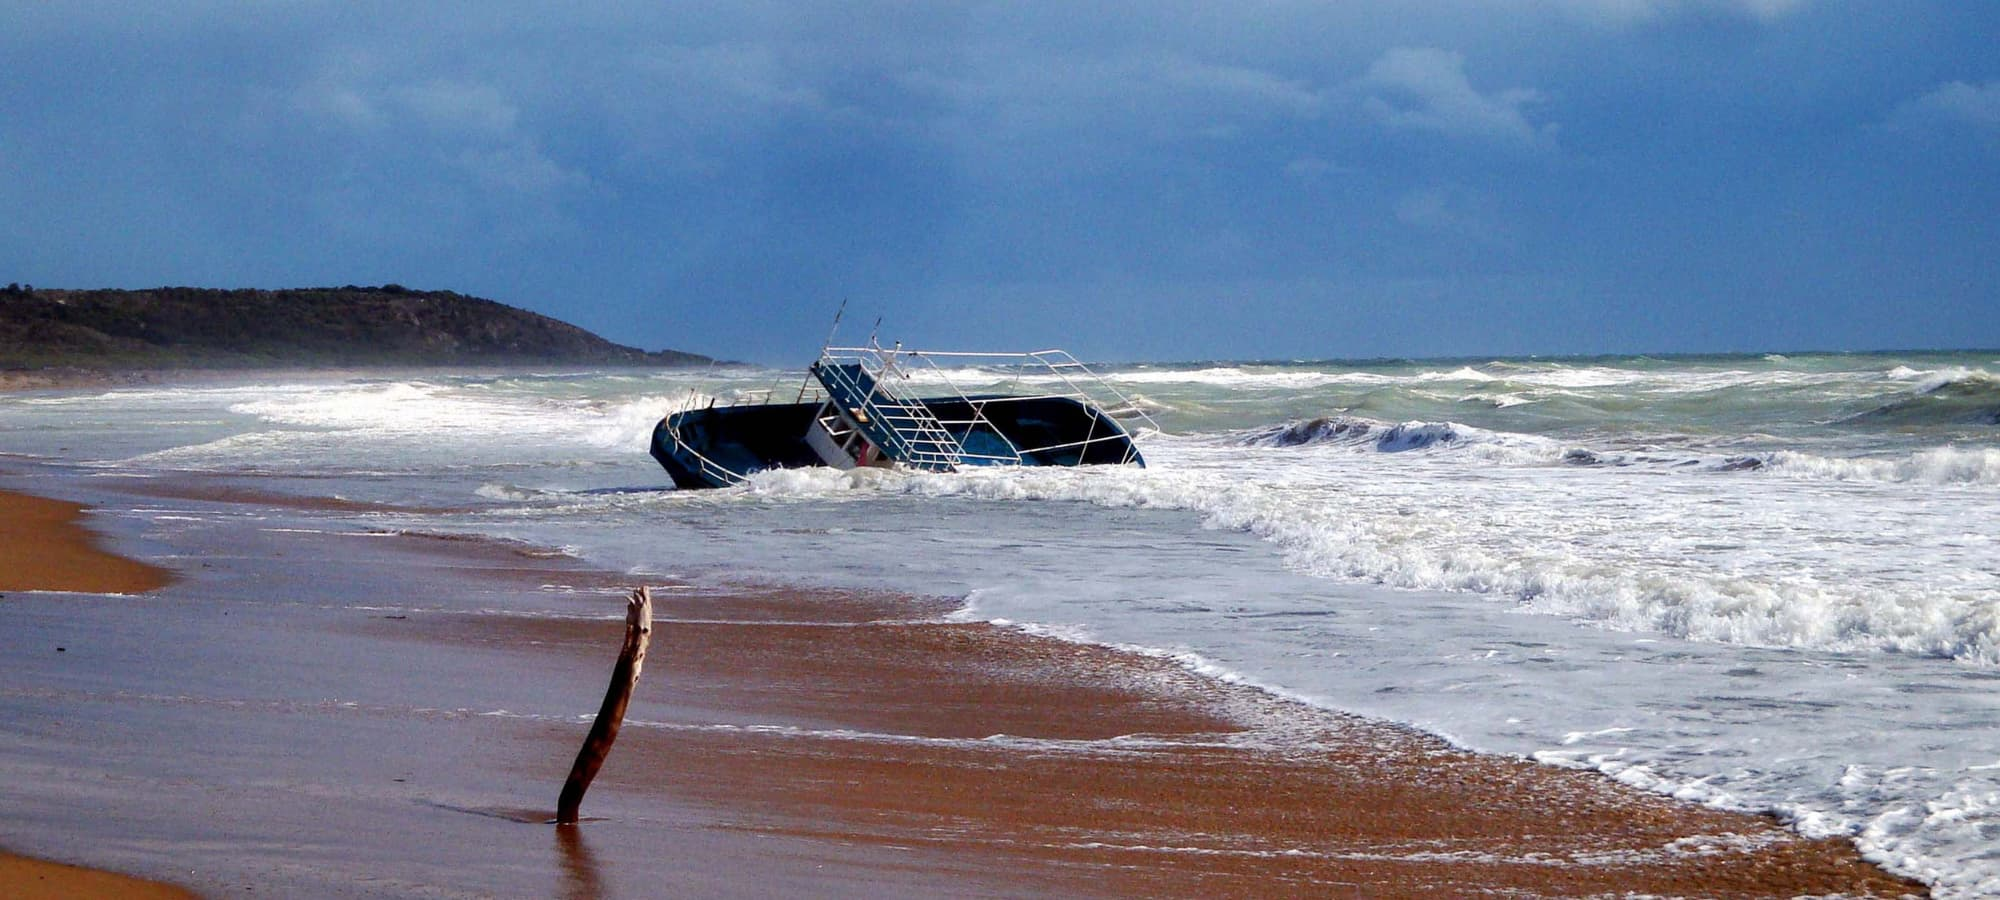 empty refugee boat washed up on a beach